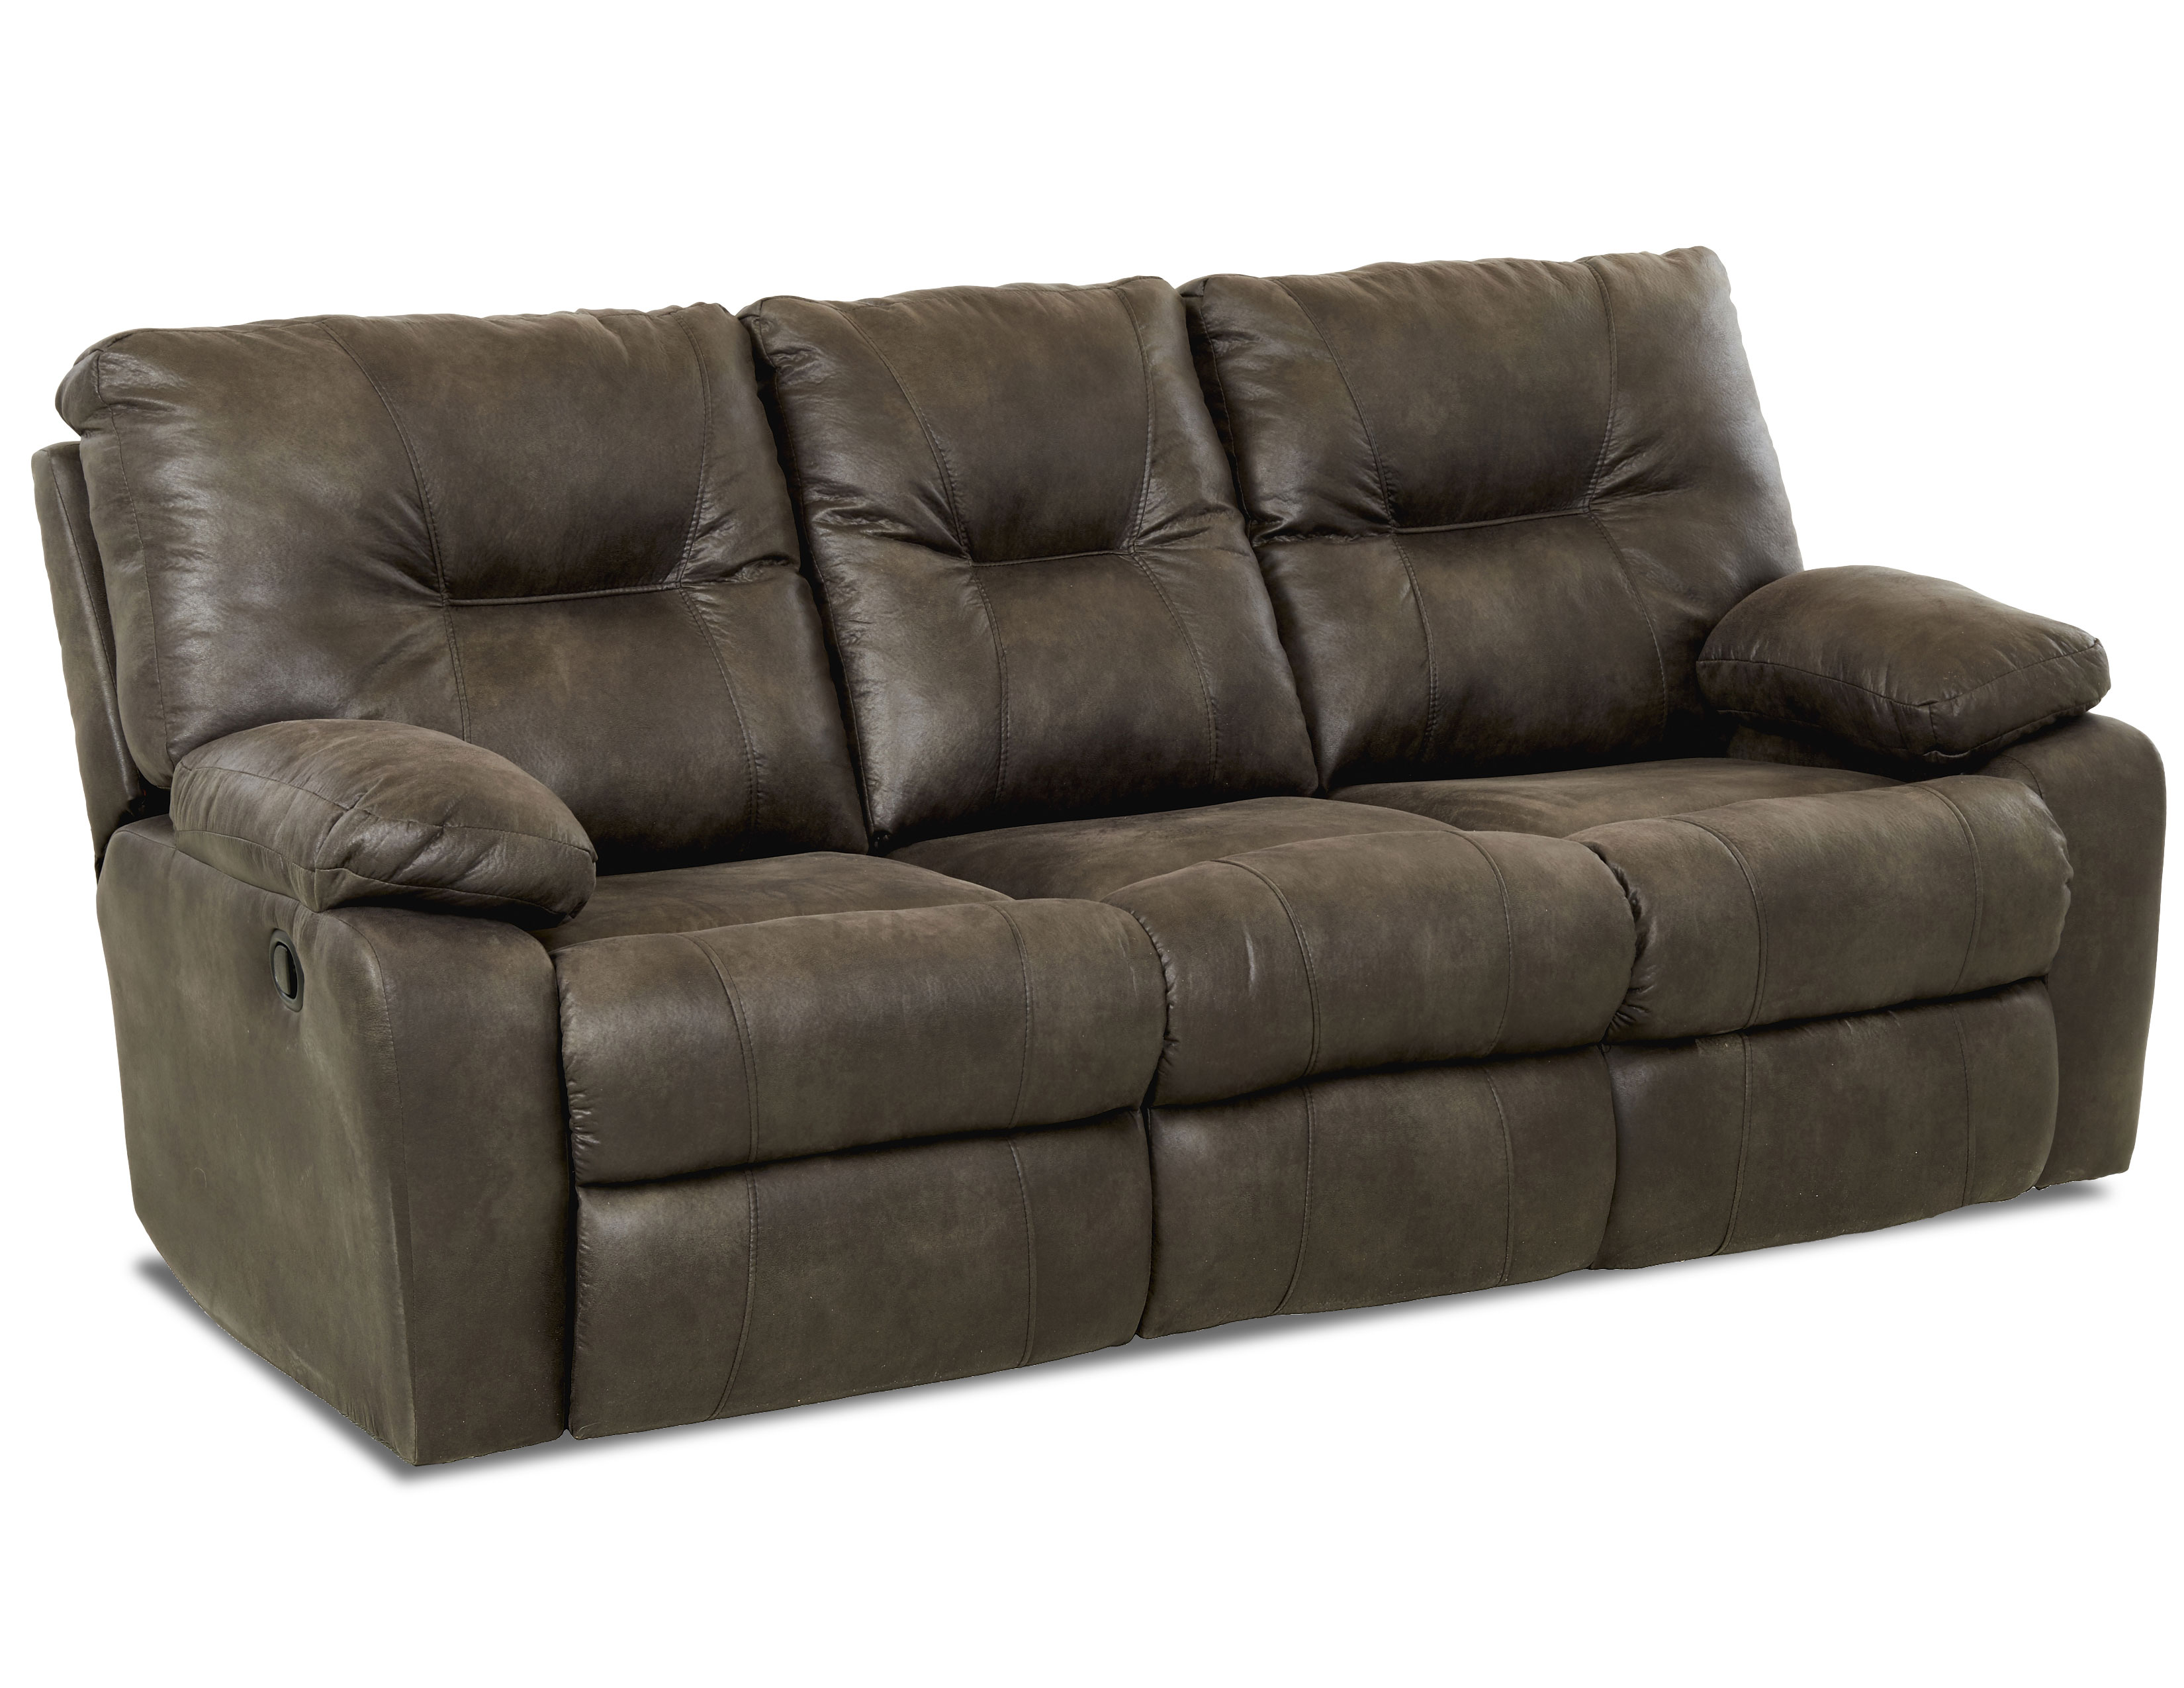 Toronto 57703 Reclining Sofa | Sofas and Sectionals